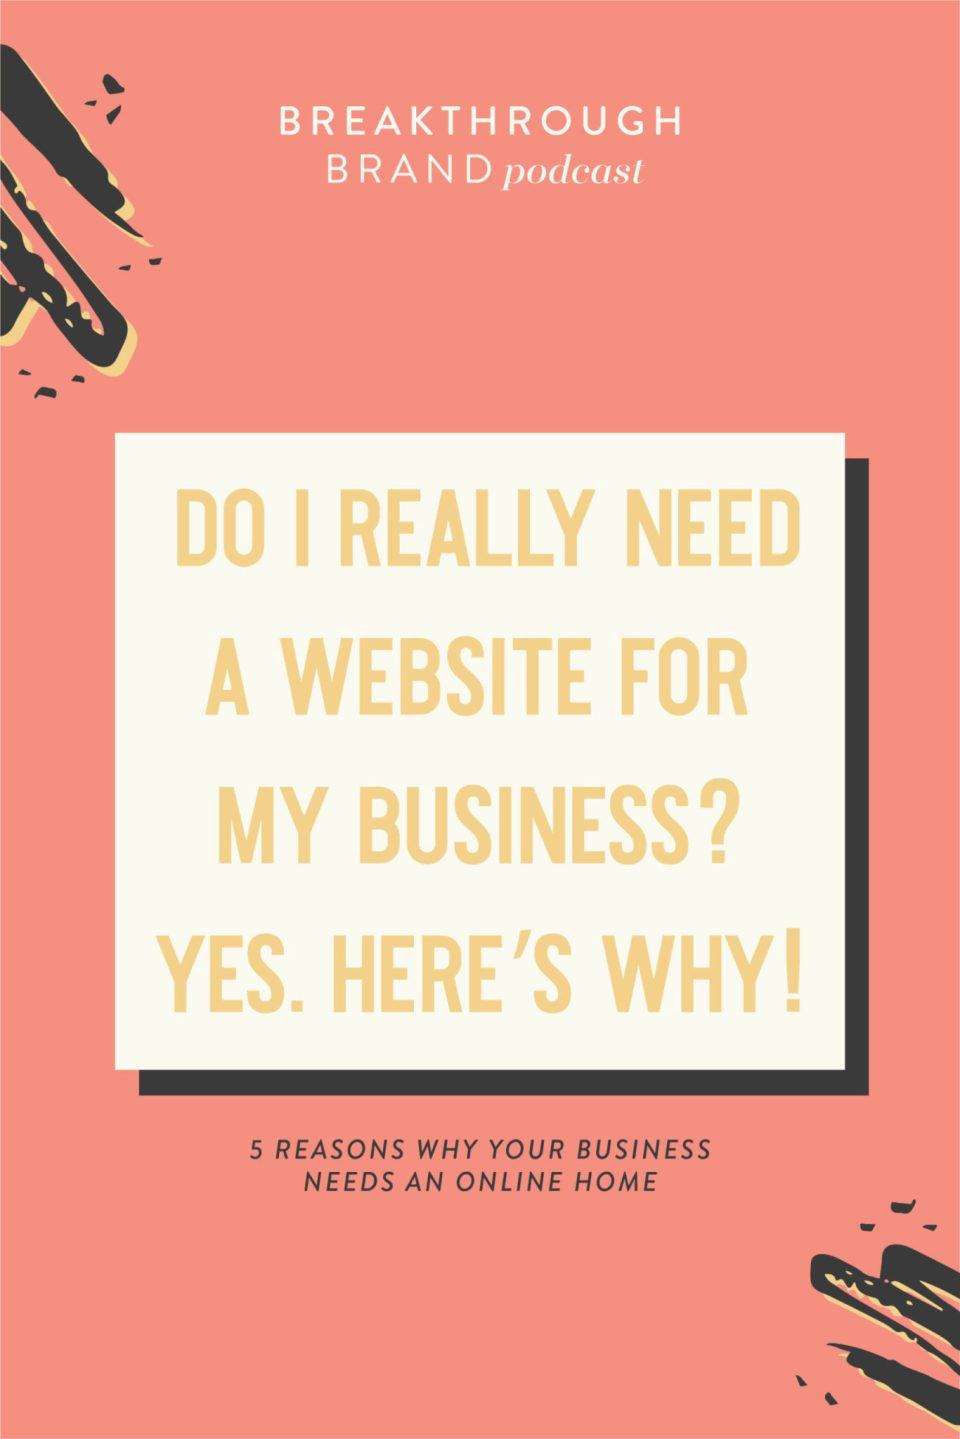 Listen to the Breakthrough Brand Podcast for answers to all of your questions about why you really do need a website with Elizabeth McCravy.